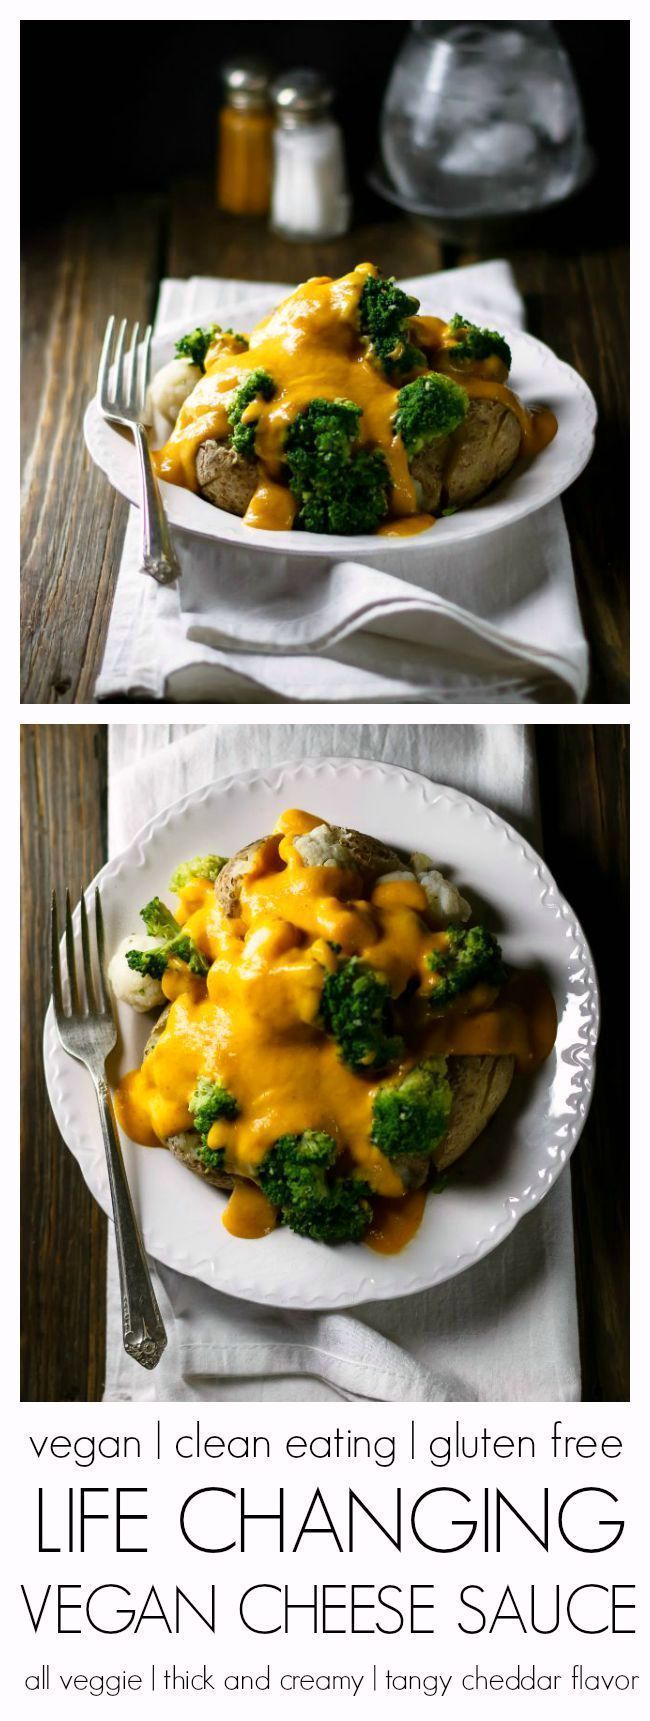 Simple ingredients give this vegan cheese sauce serious cheddar flavor. My biggest reader favorite - everyone loves this stuff!